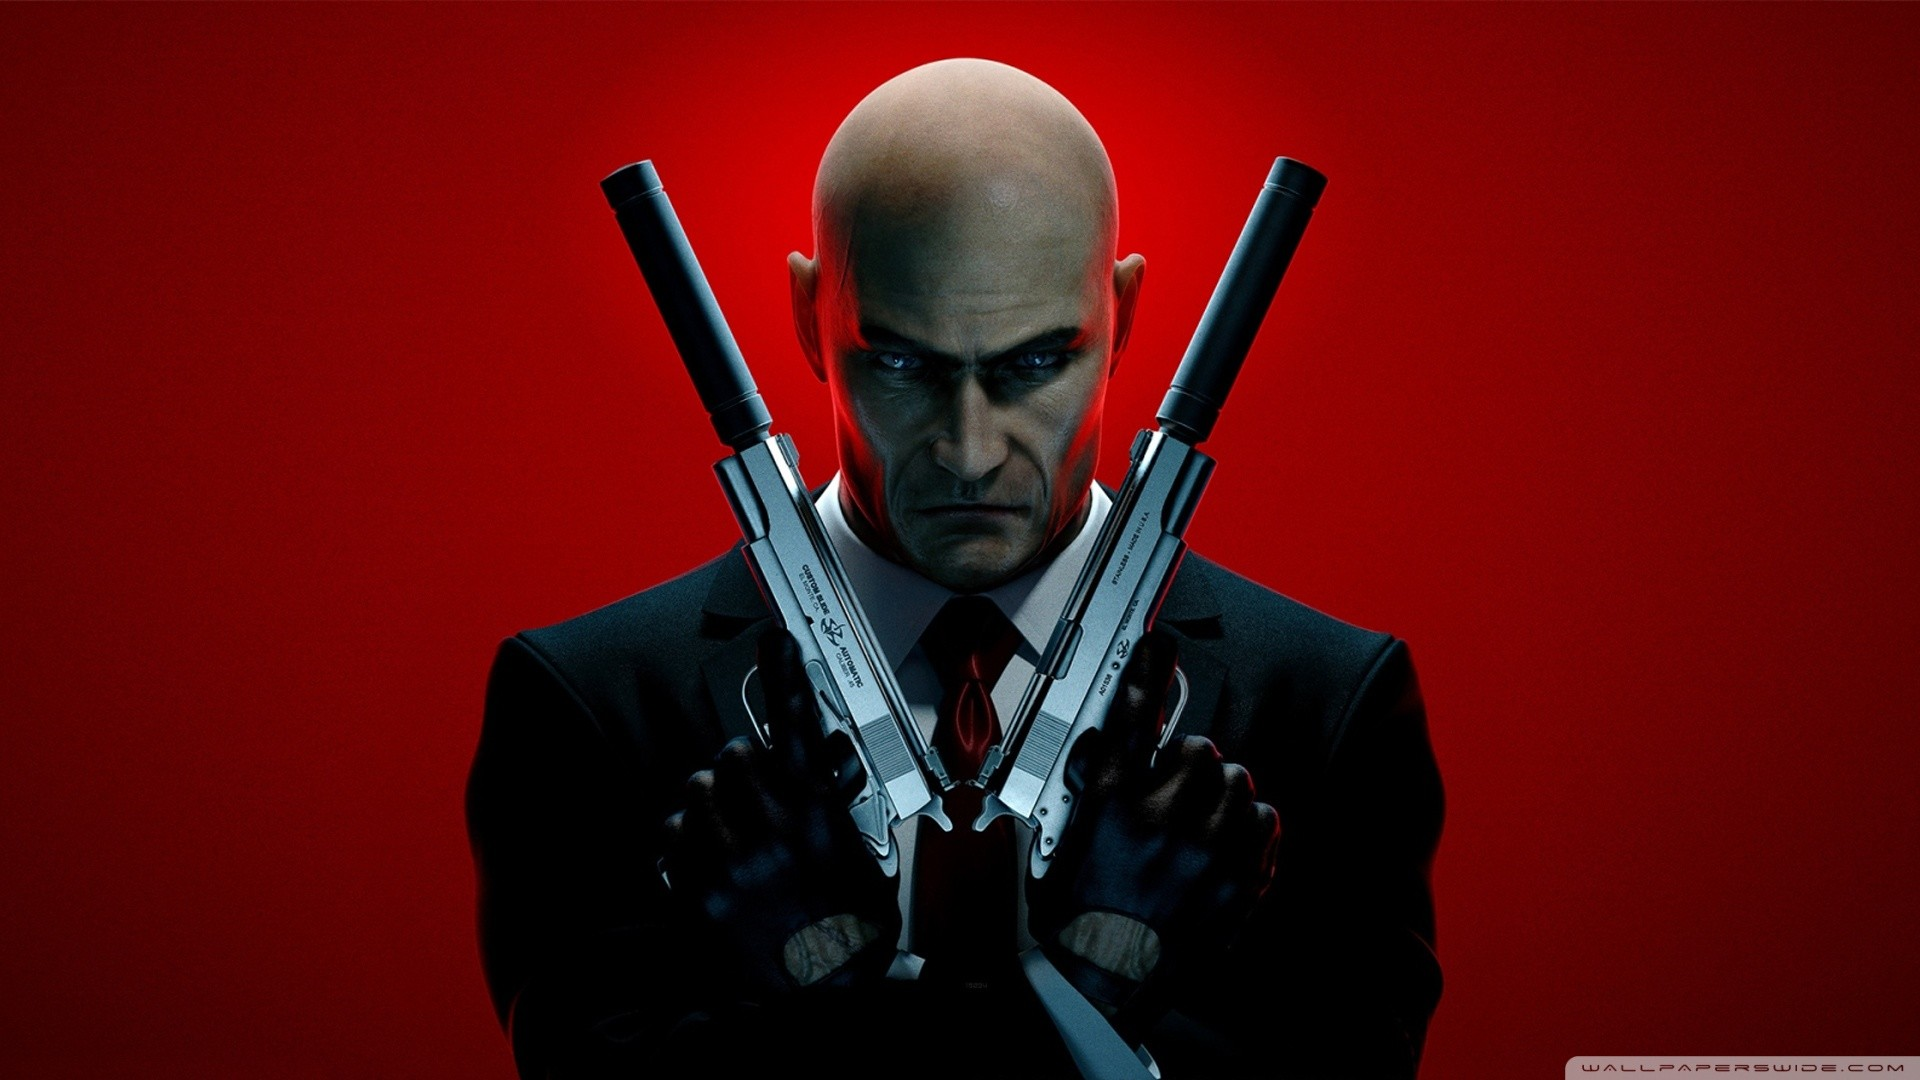 1920x1080 download free hitman wallpaper 1920x1080 · Download · gorgerous hitman wallpaper ...